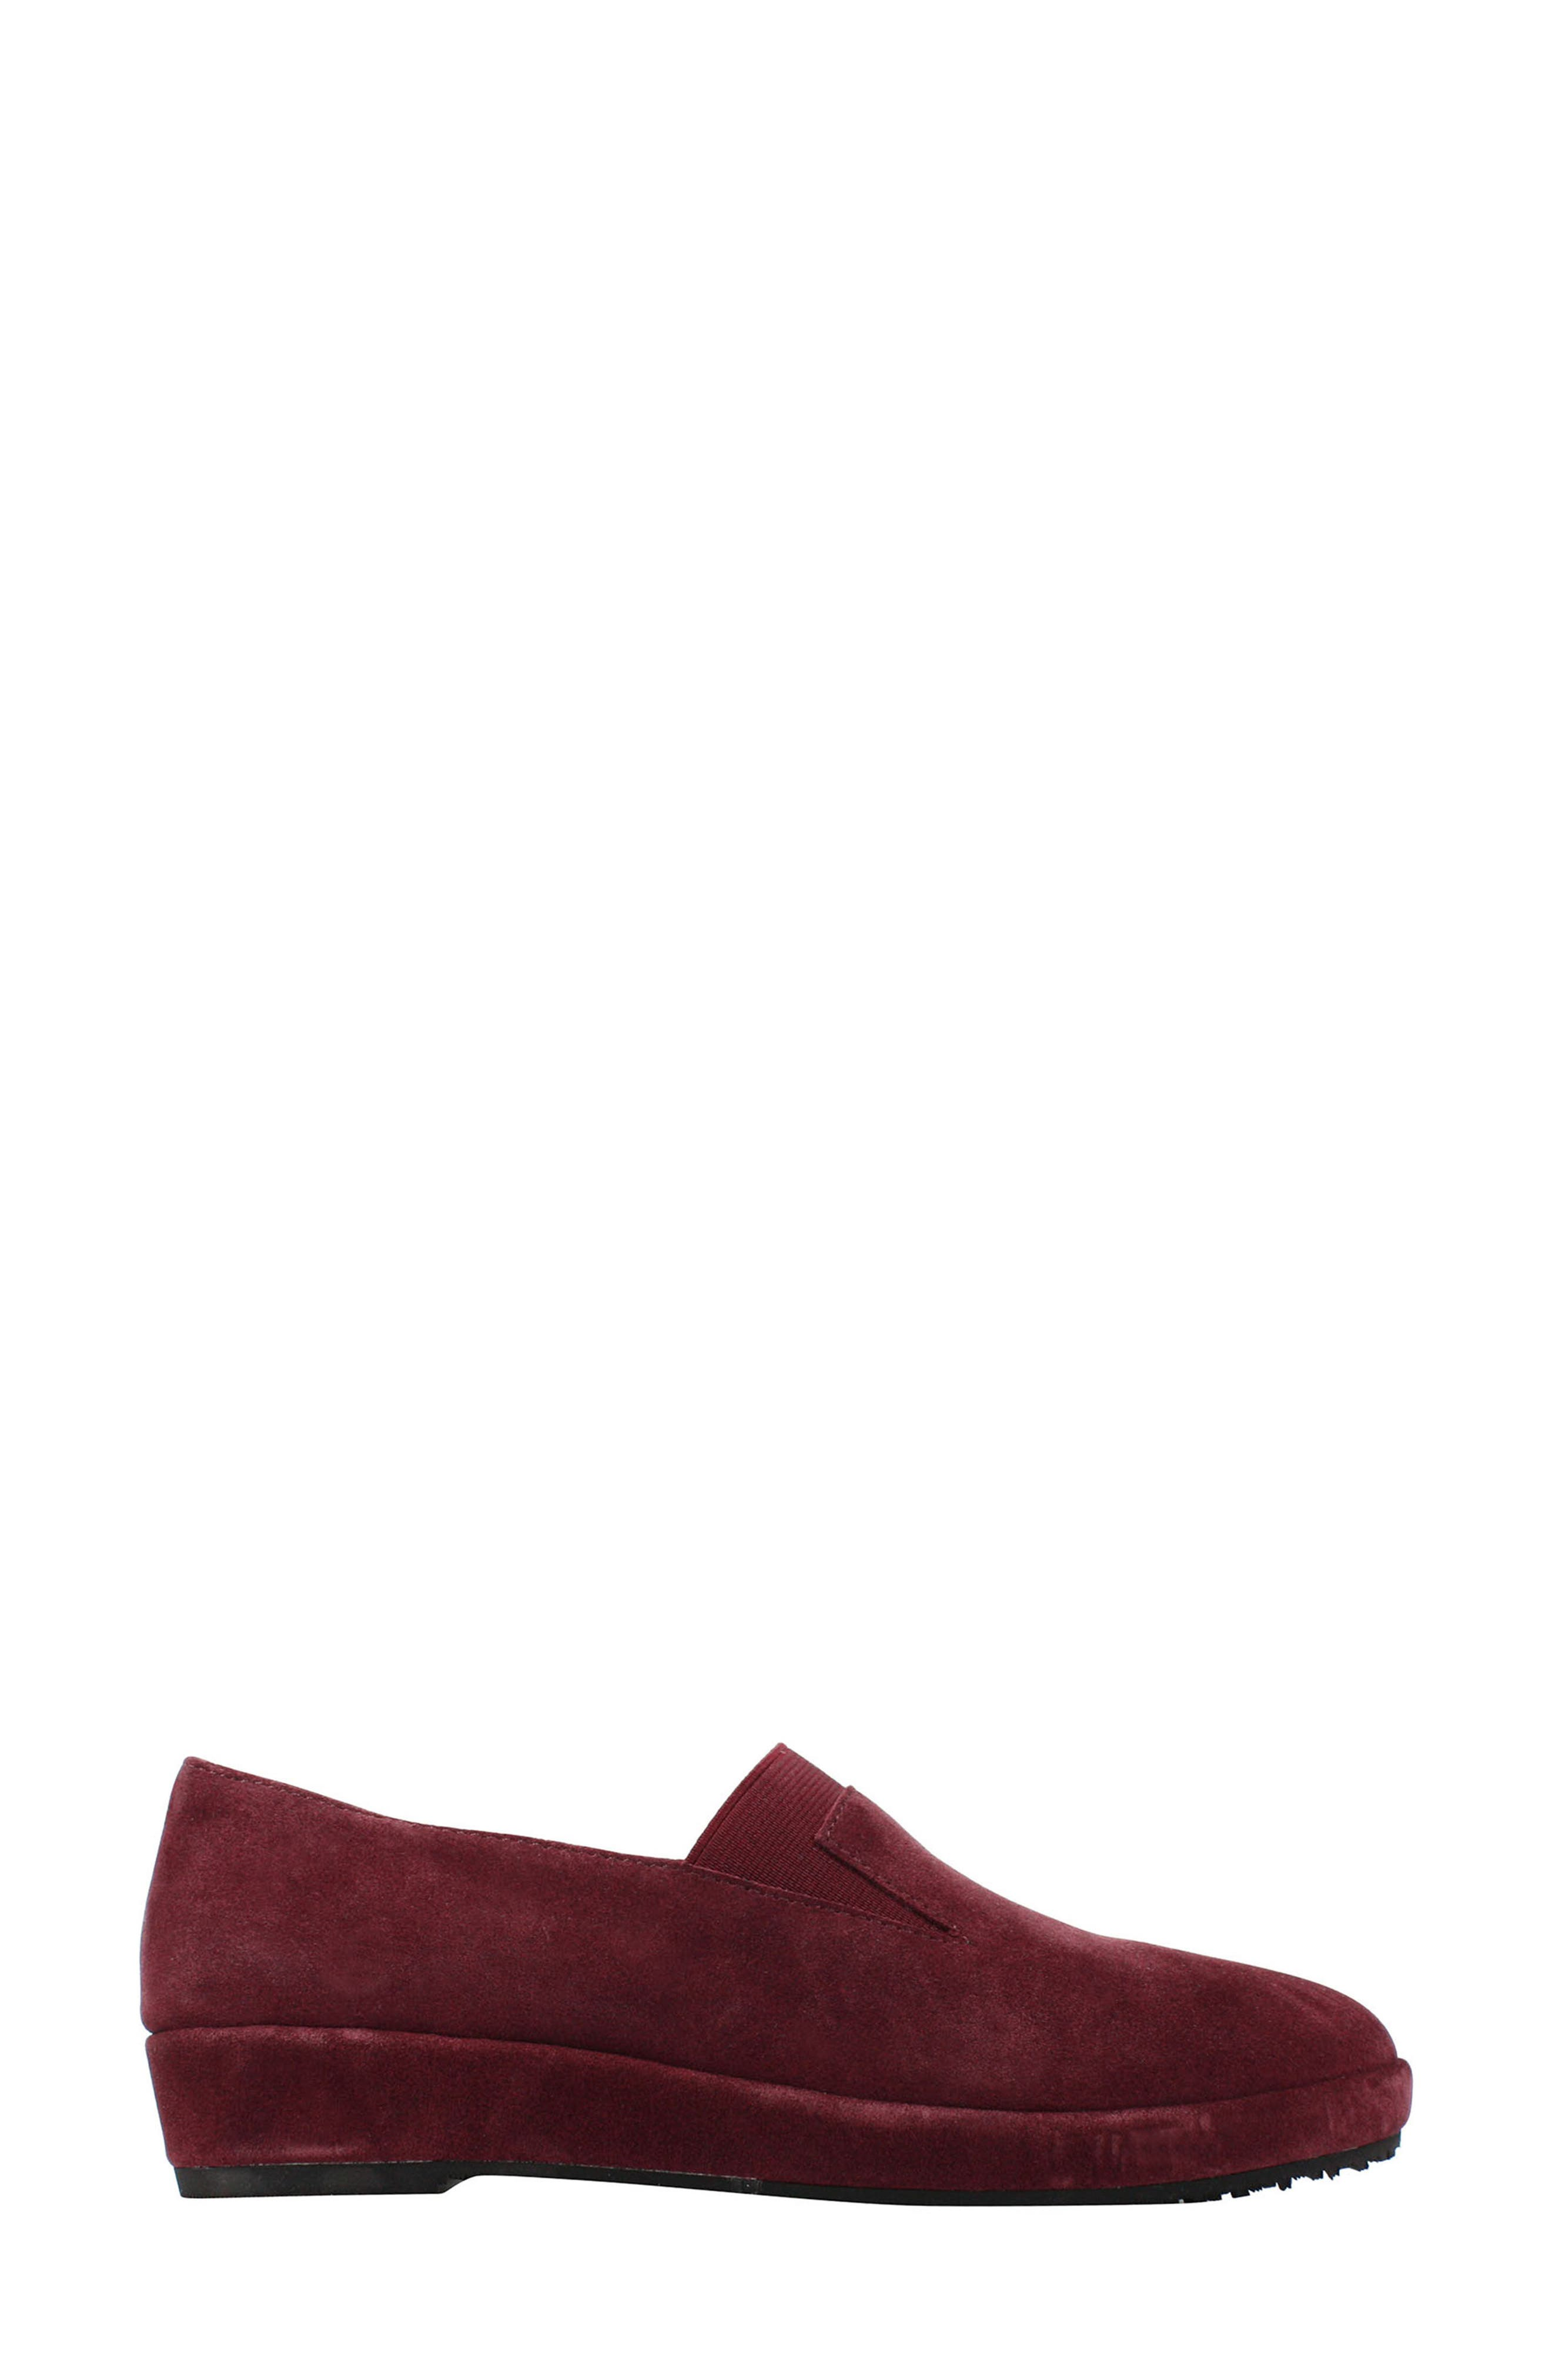 Corrine Slip-On,                             Alternate thumbnail 3, color,                             Mulberry Suede